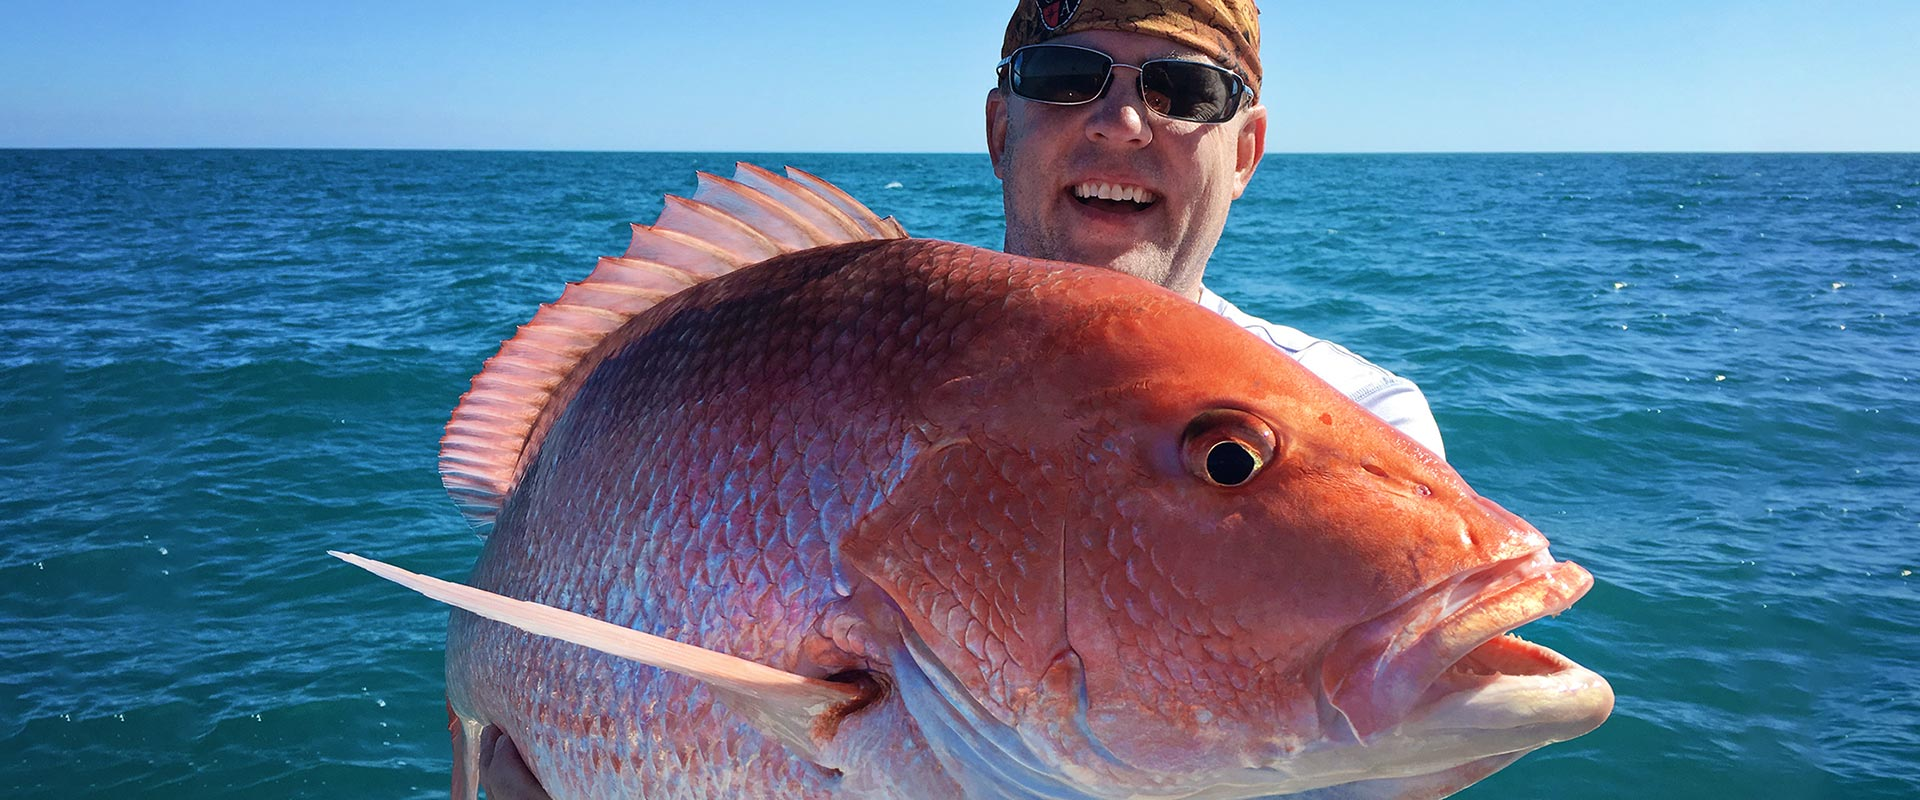 deep sea fishing cape canaveral